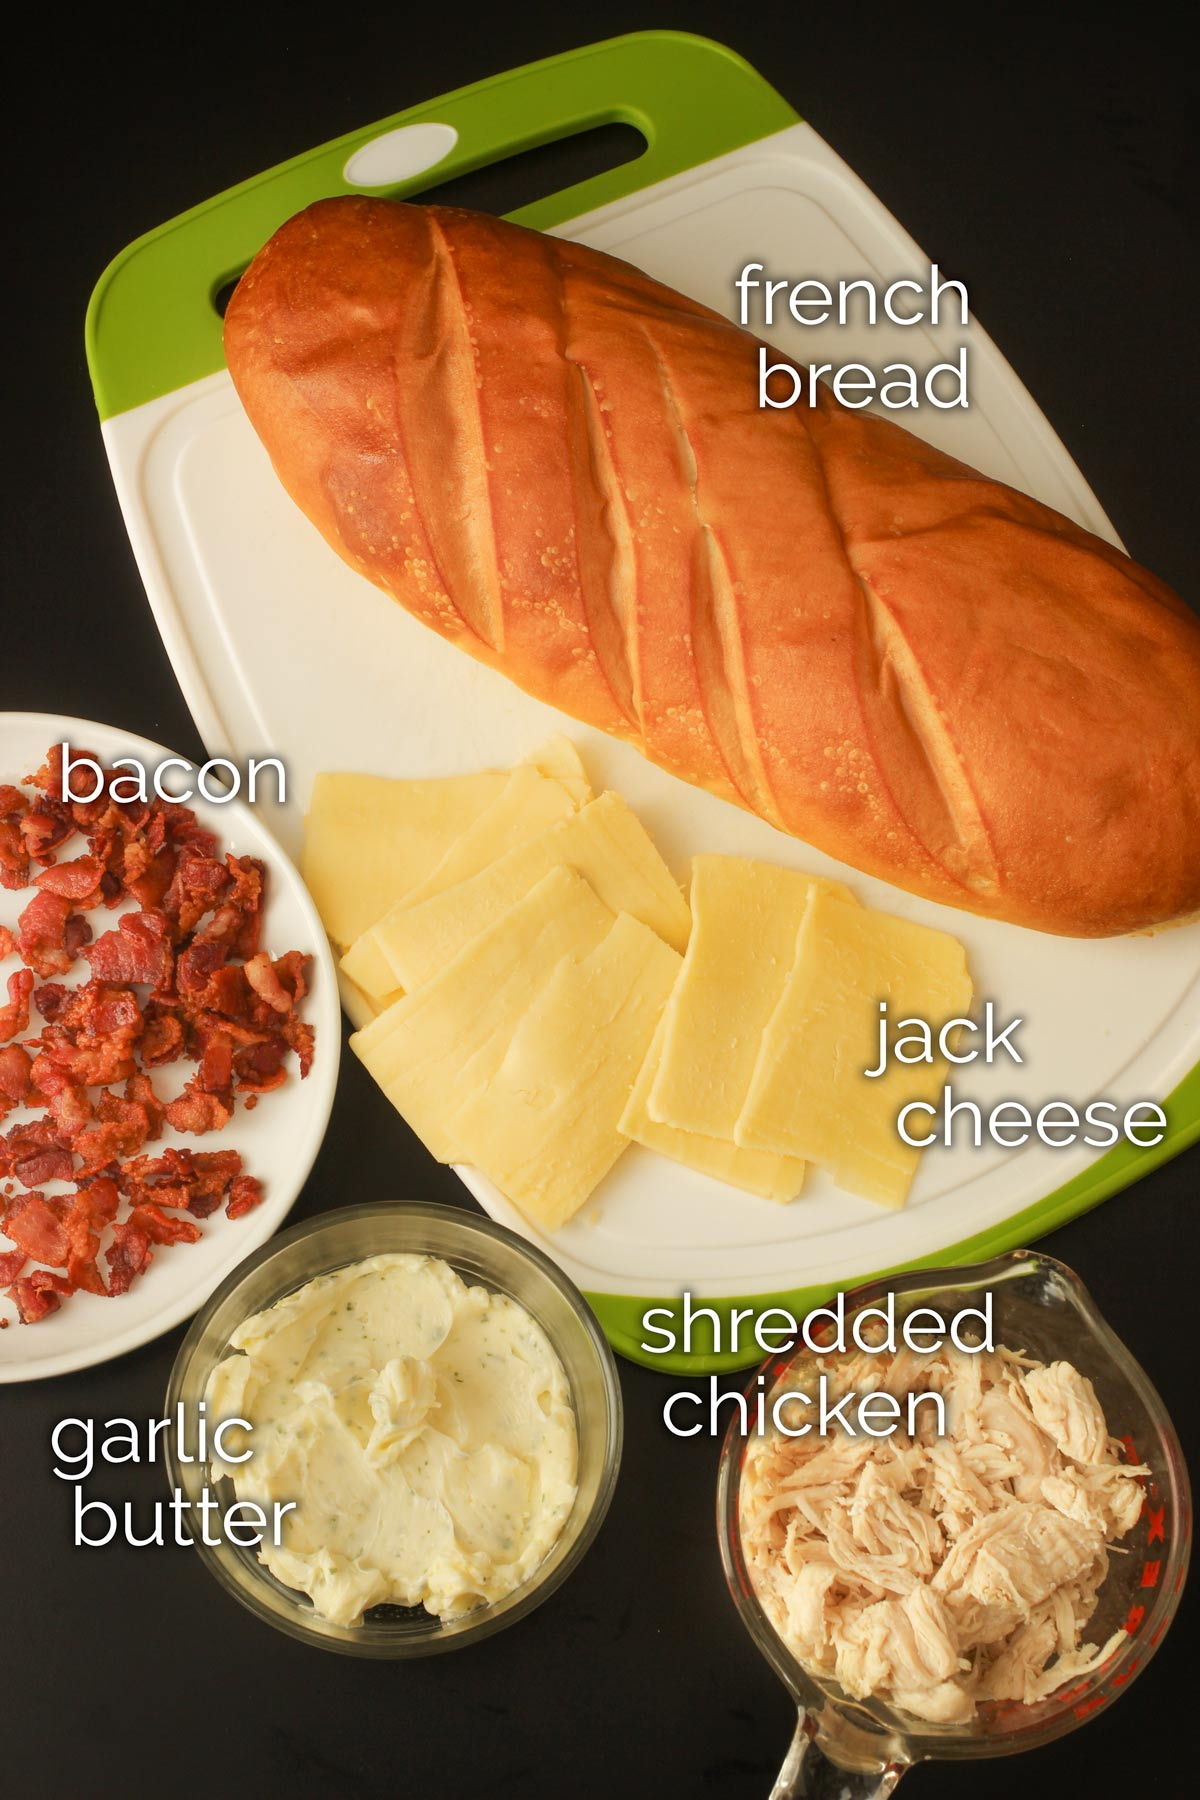 ingredients for hot chicken sandwiches laid out on black tabletop.